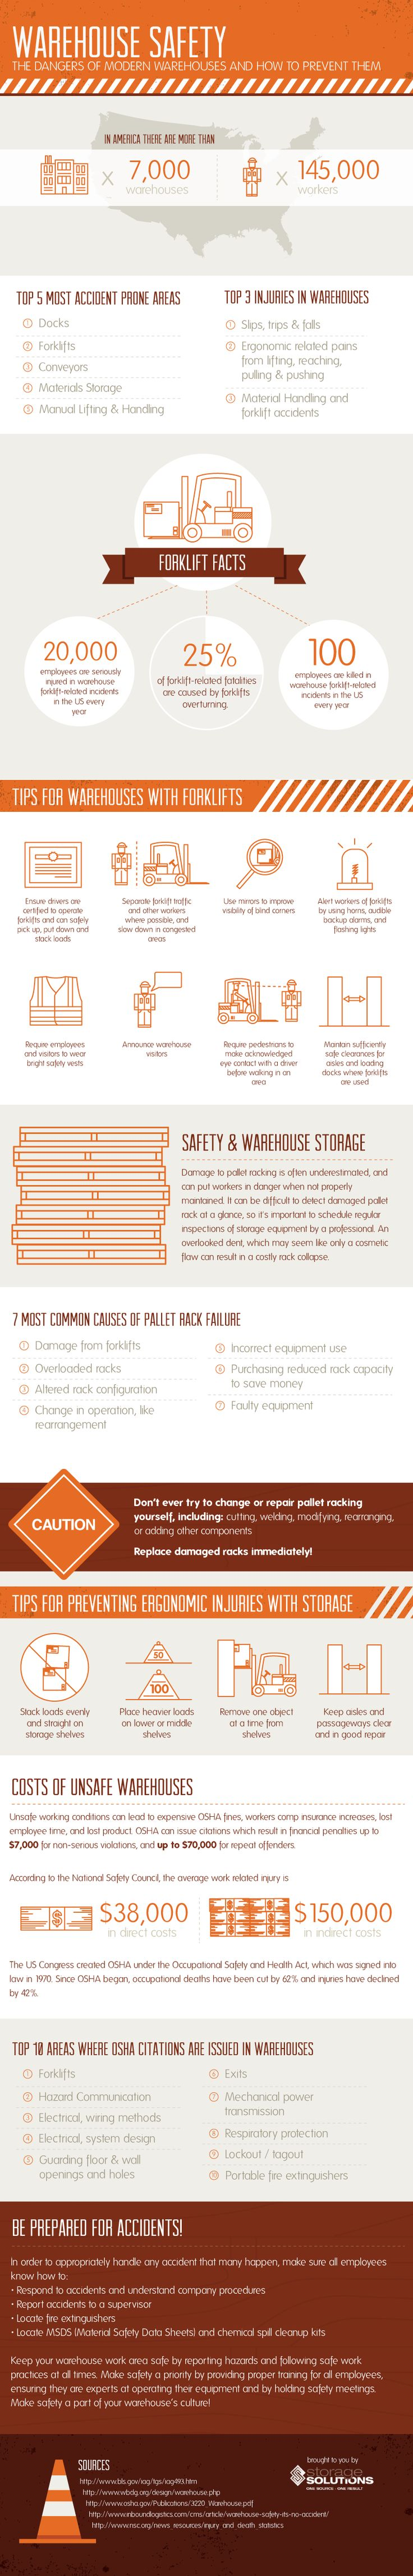 This infographic shows the tips for warehouse safety, the dangers of modern warehouses and how to prevent them.